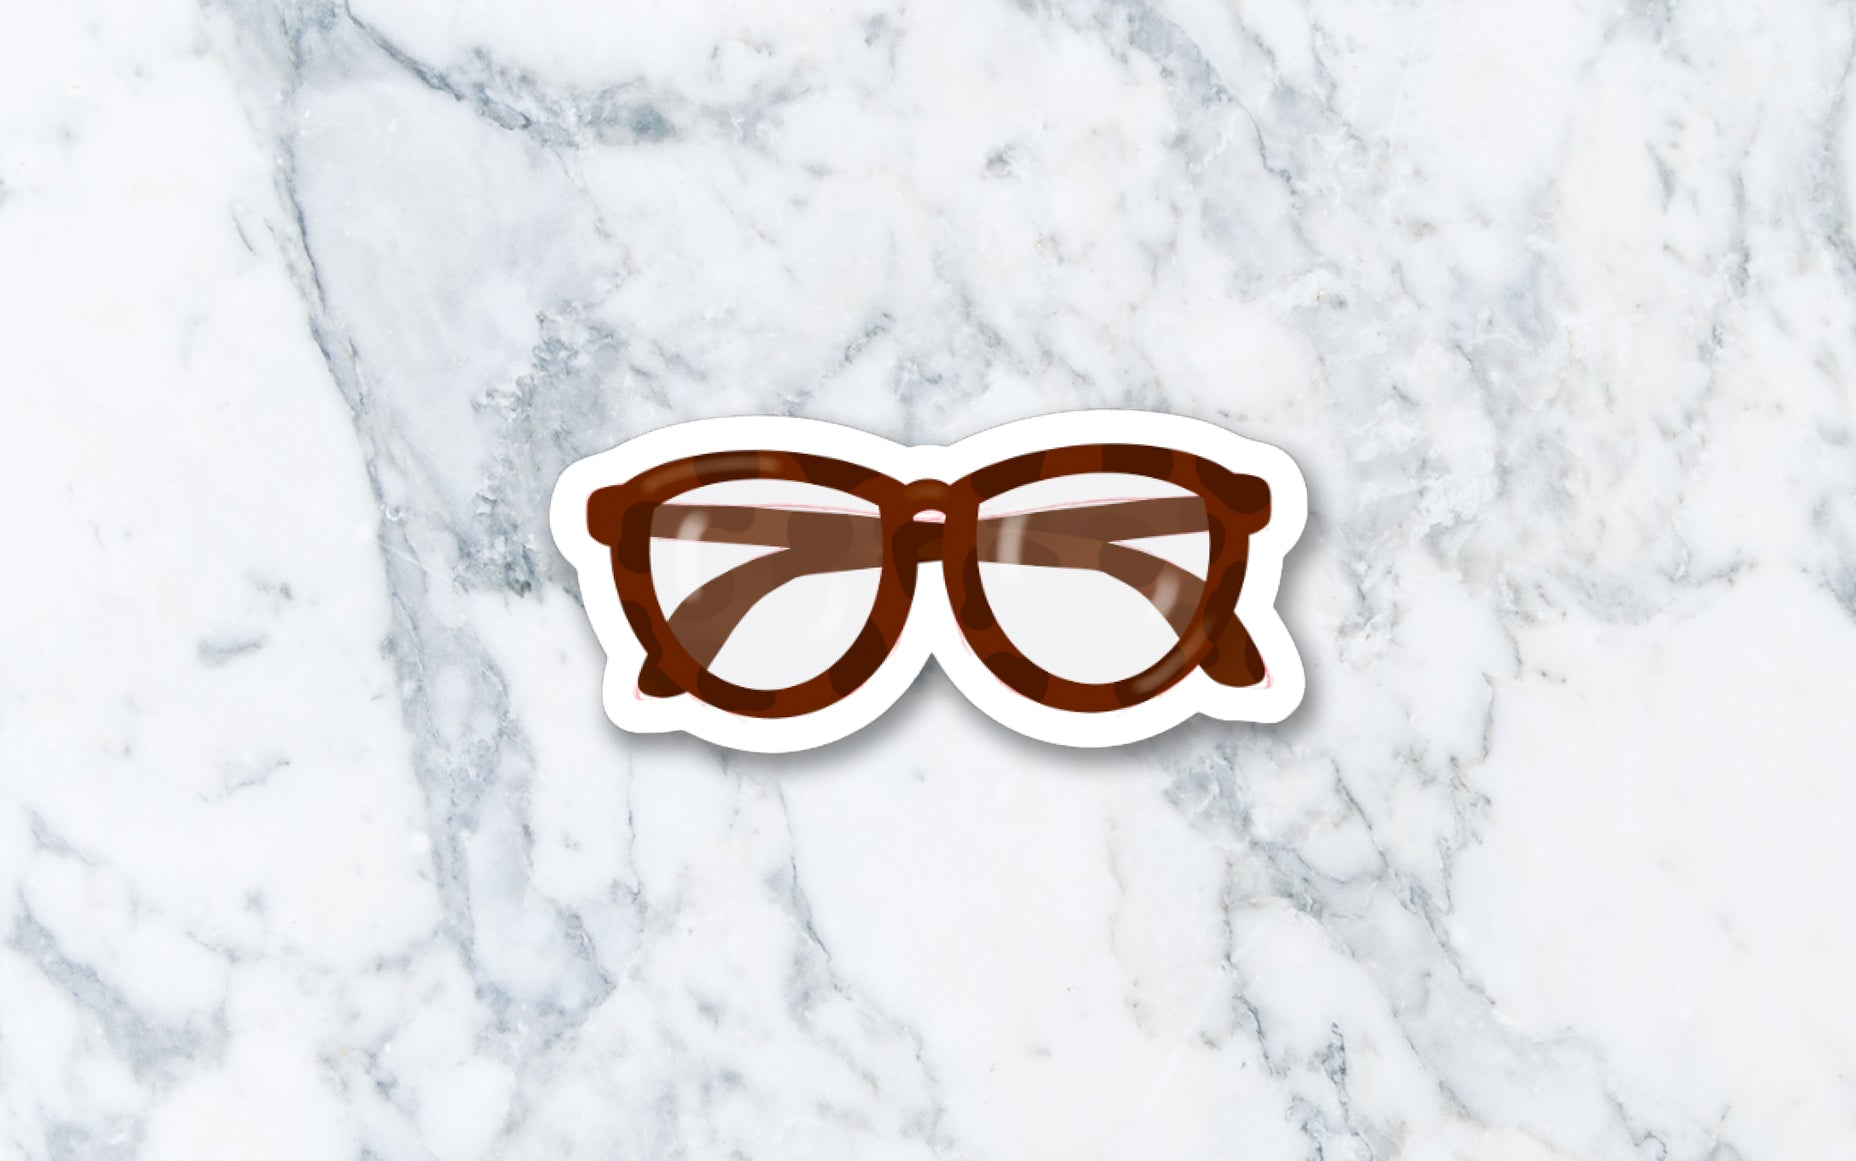 Glasses - Vinyl Die-cut Sticker